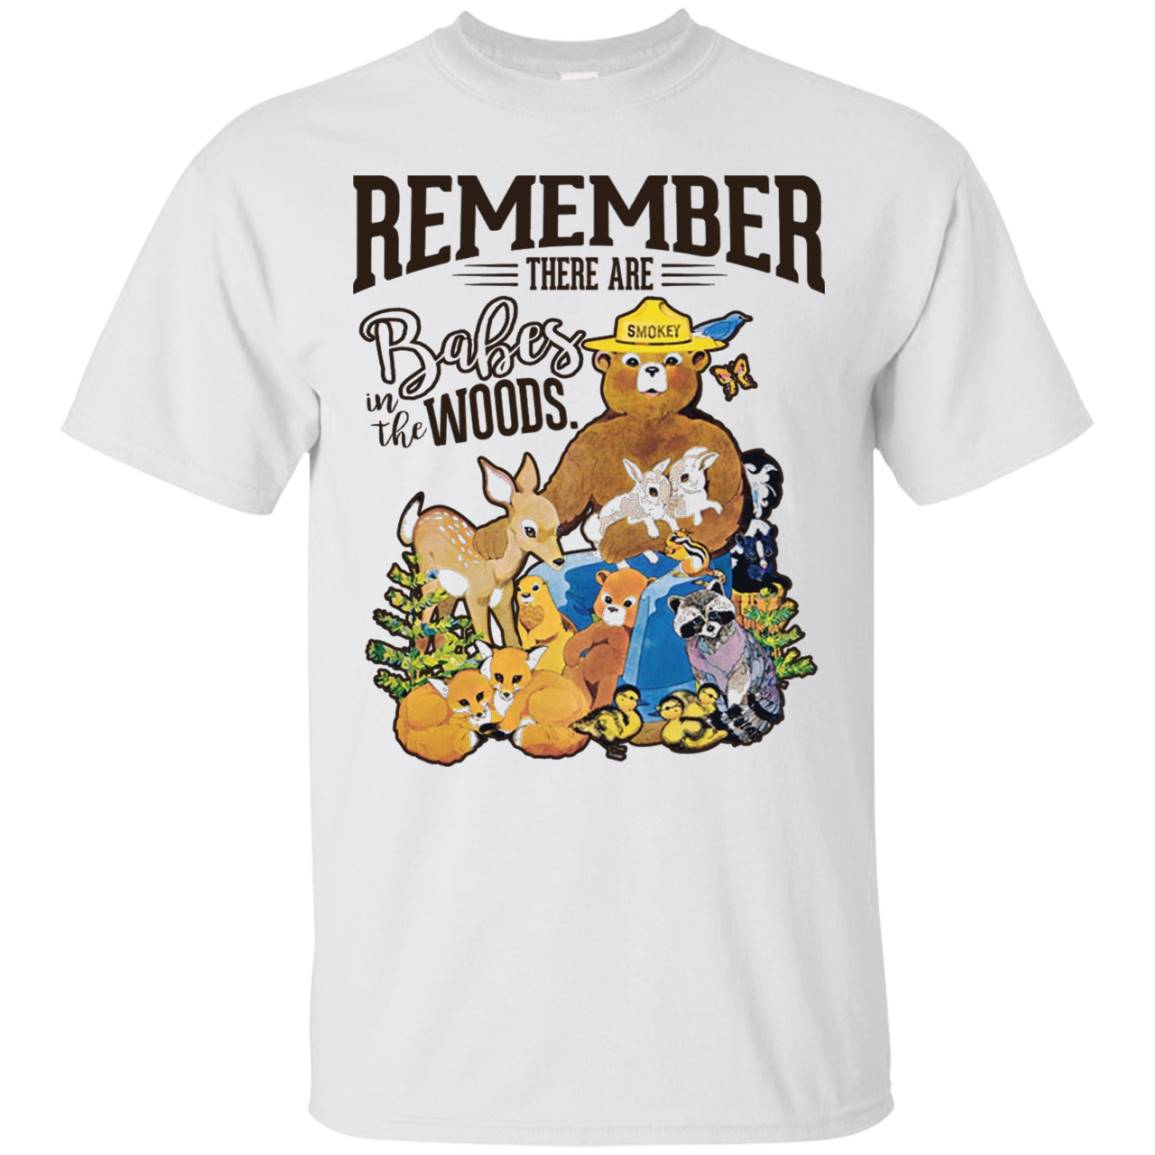 REMEMBER THERE ARE BABES IN THE WOODS Tees Smokey bear